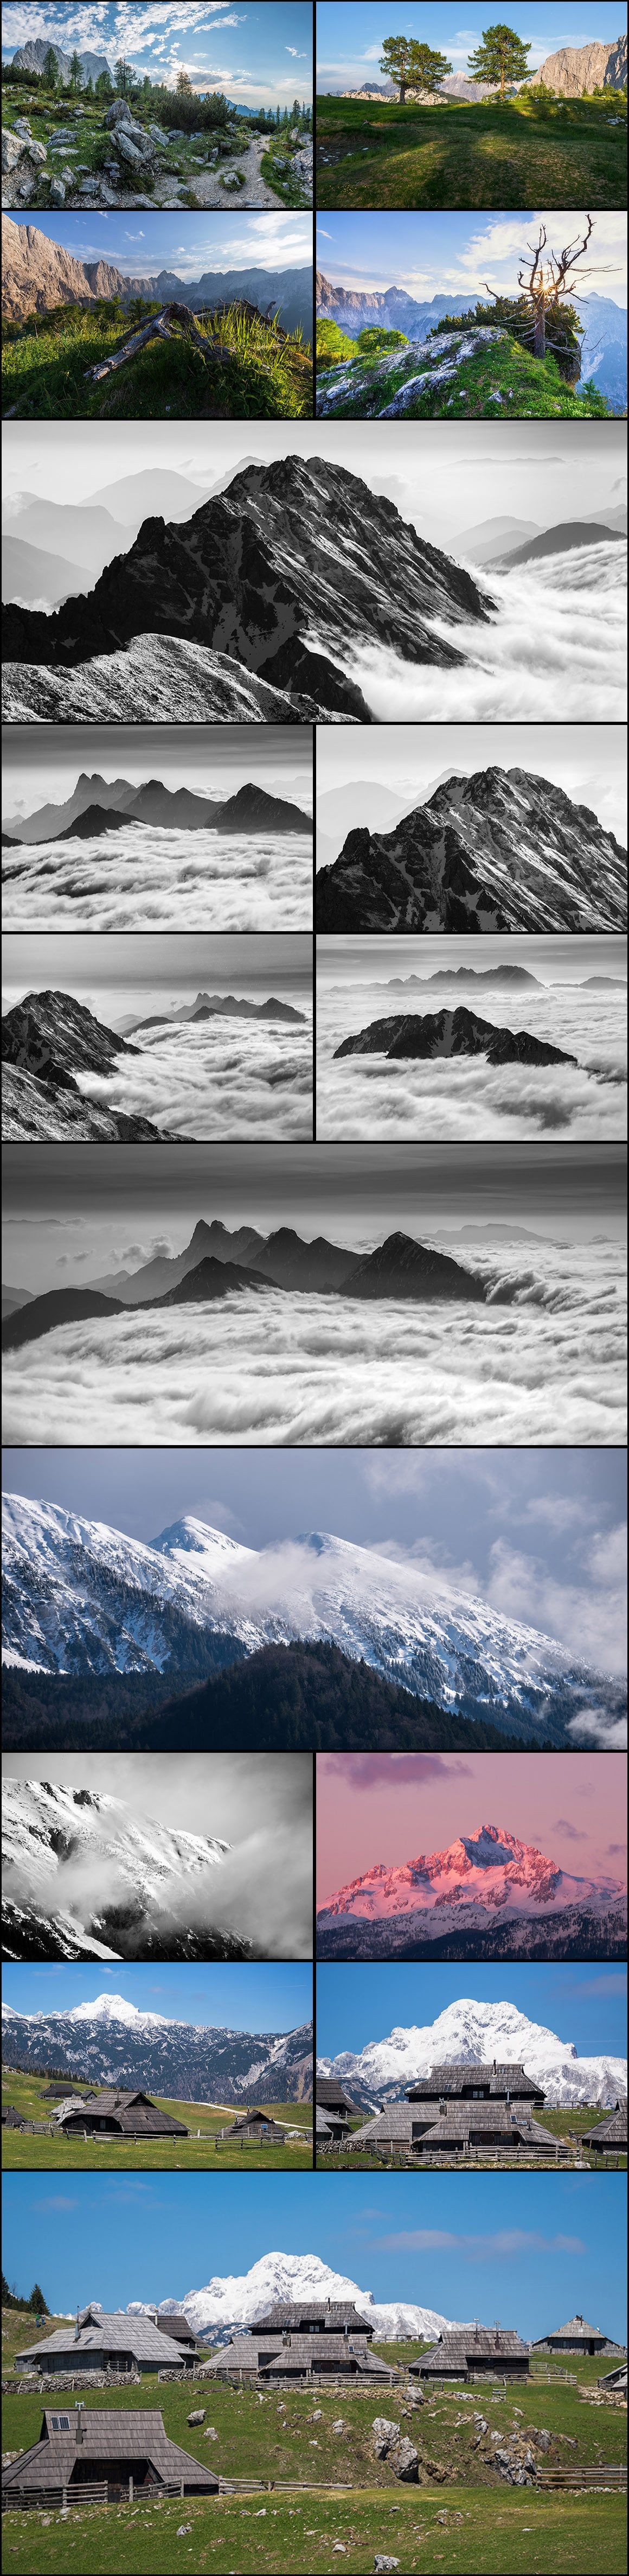 500+ Stock Images. Ultimate Photo Bundle  – $59 - PREVIEW mountains4